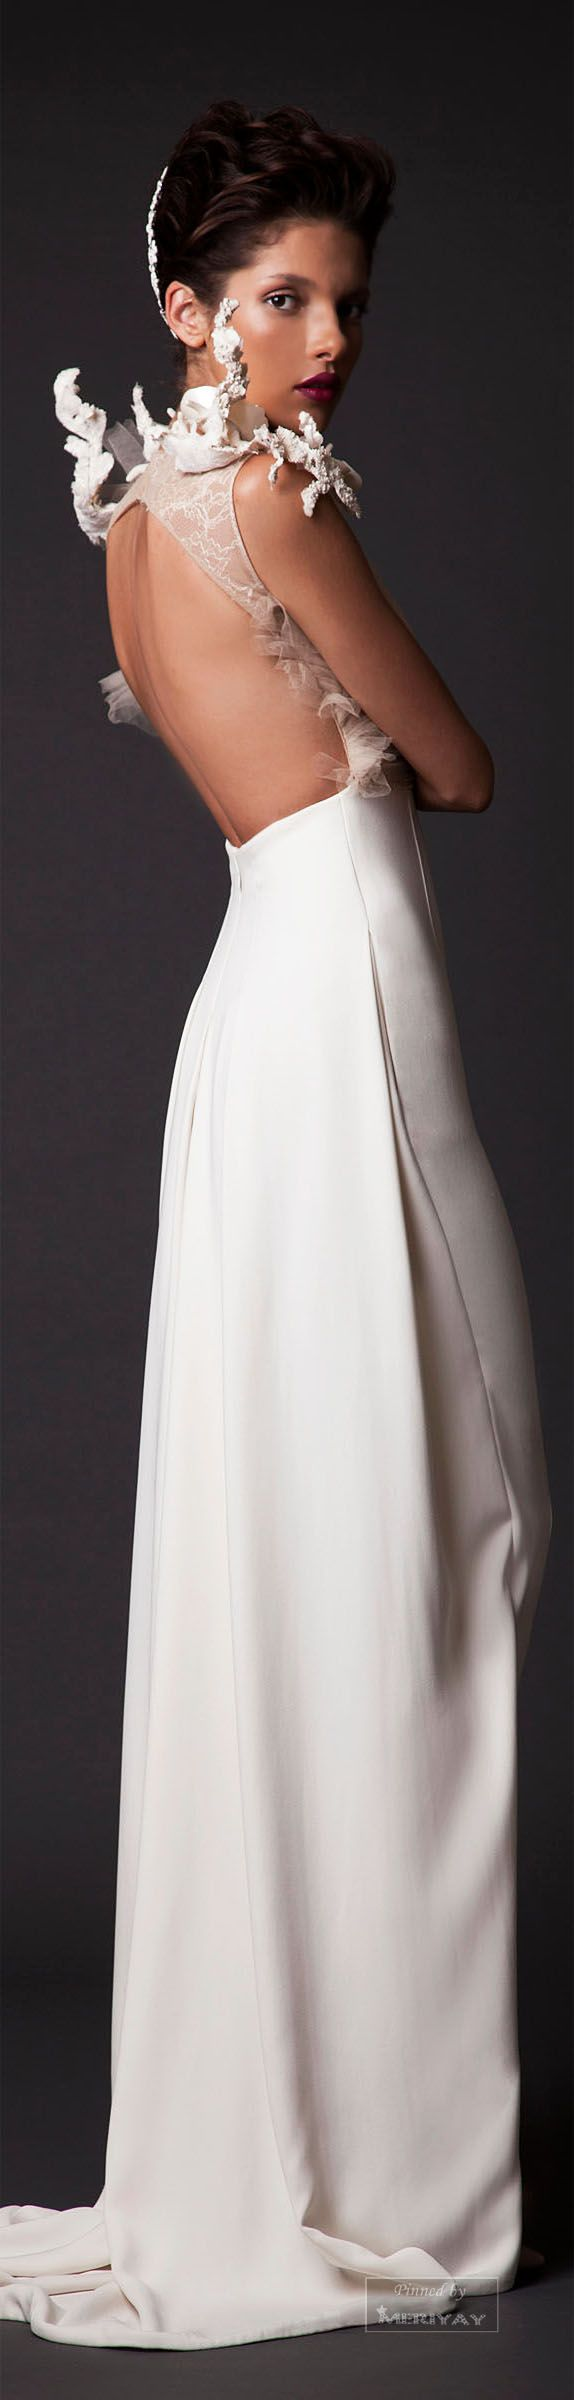 Yoruba traditional wedding decorations november 2018  best krikor jabotian images on Pinterest  Krikor jabotian